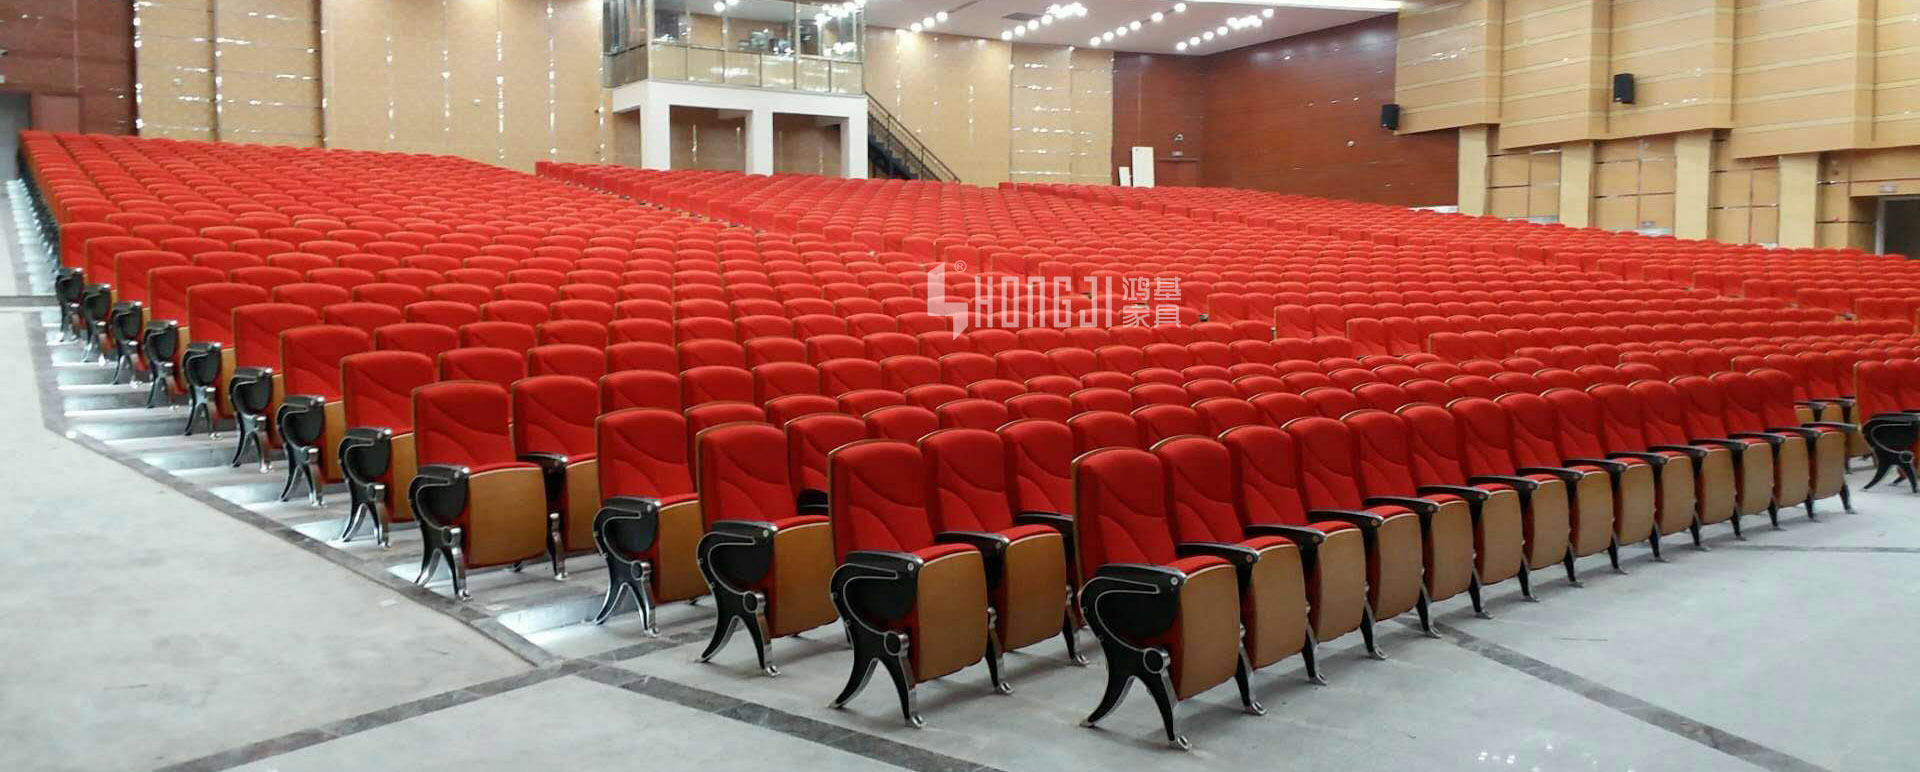 HONGJI elegant unique theater seating manufacturer for sale